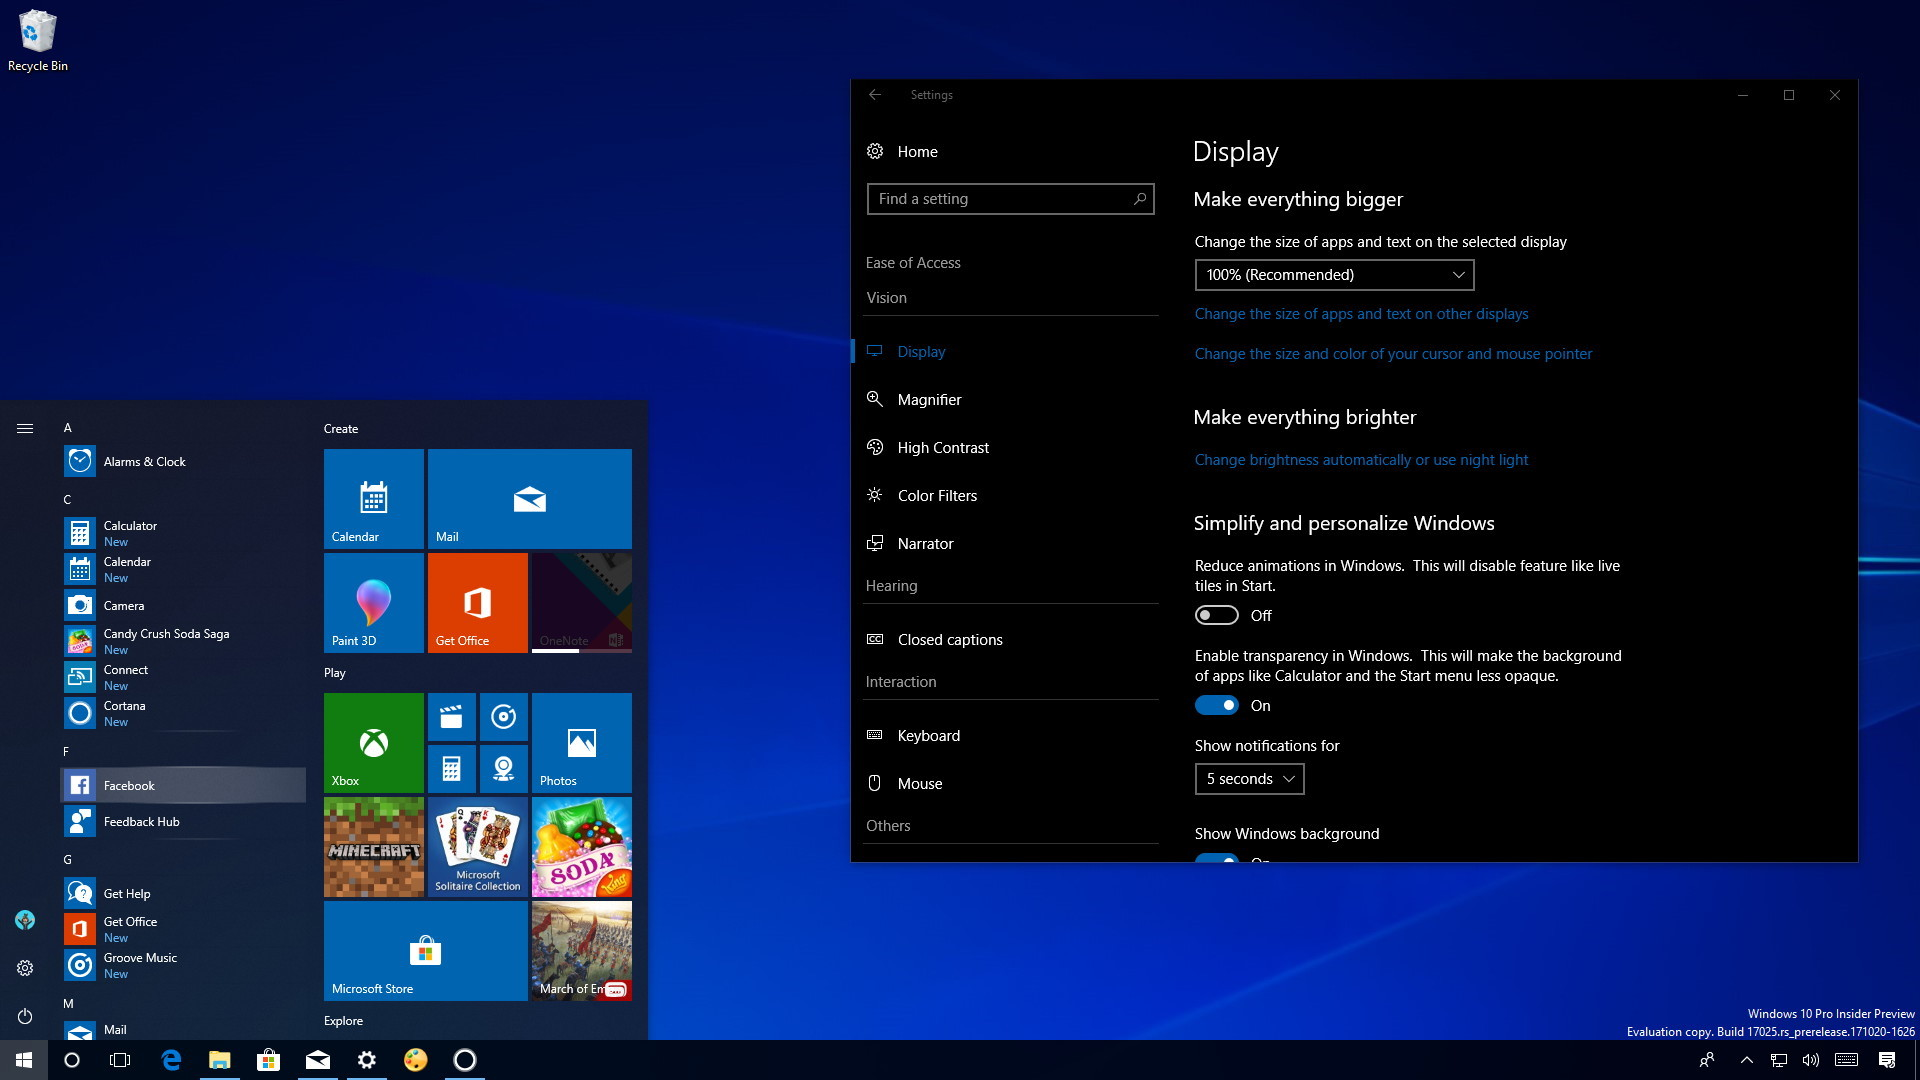 windows 10 new features